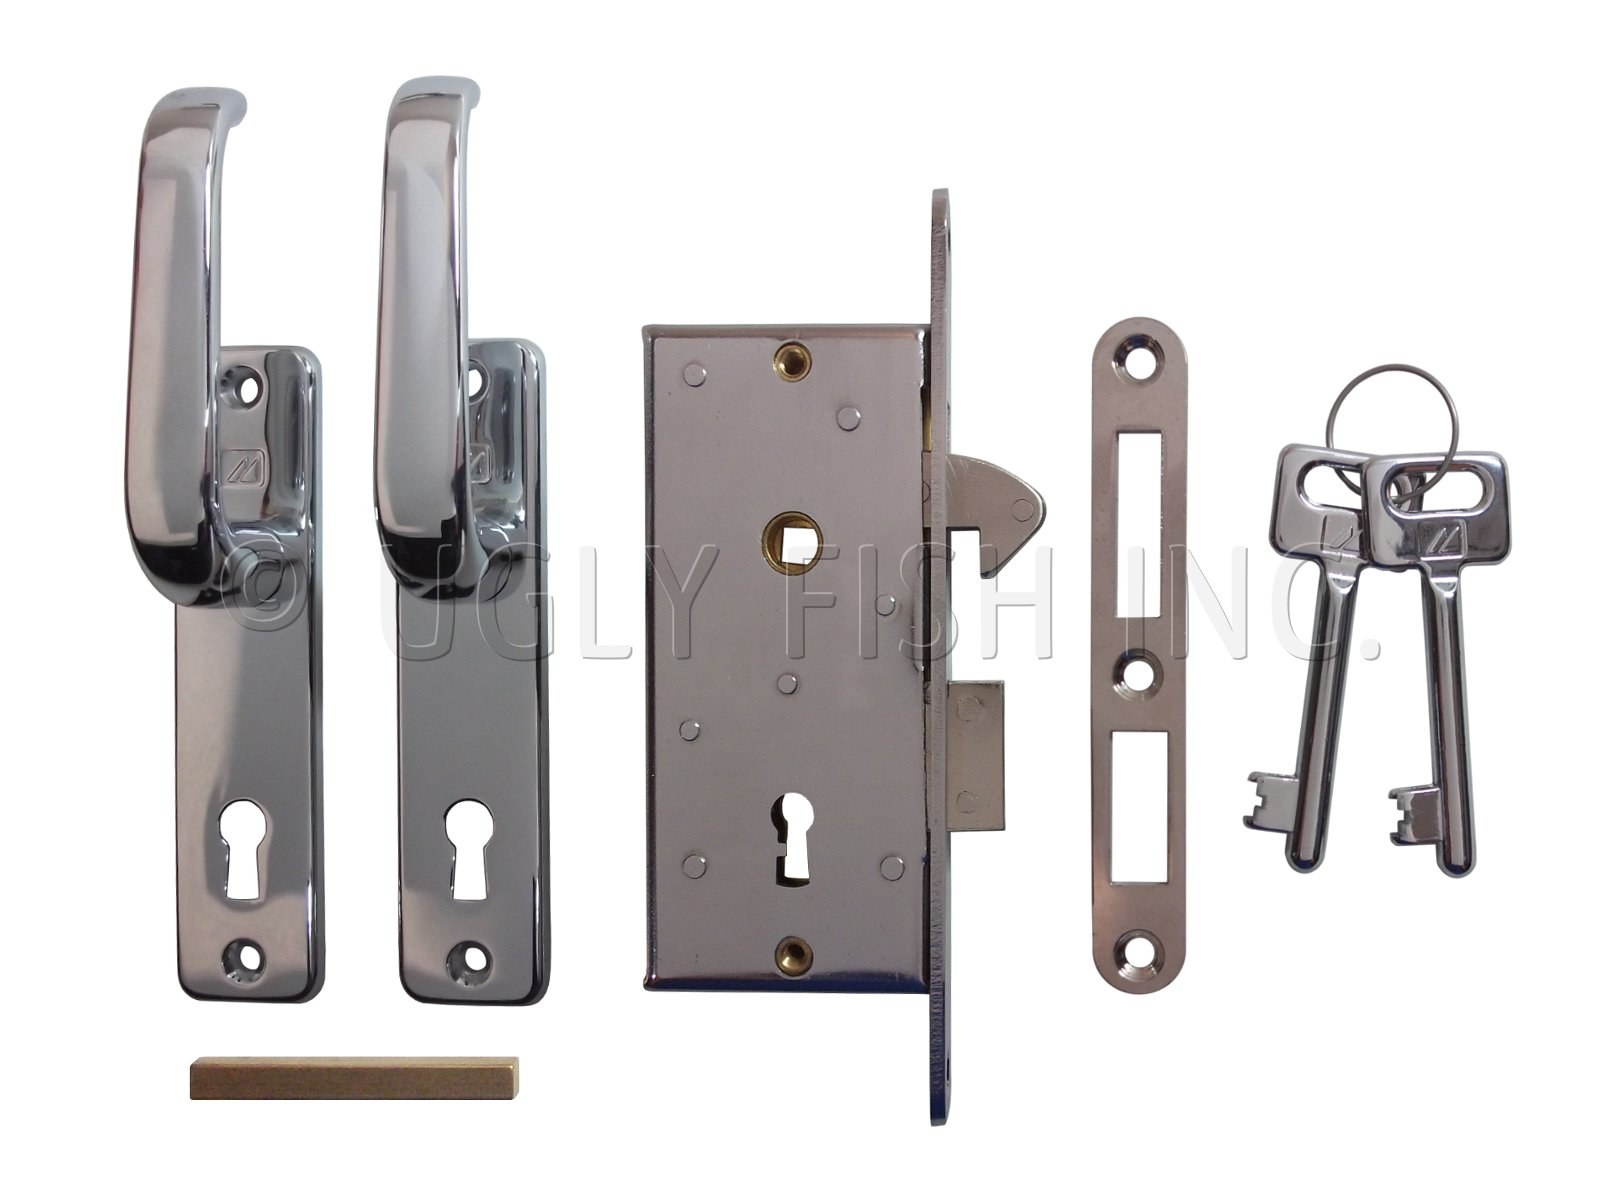 MC-99-2-7302 Mobella Slim Sliding Door Latch